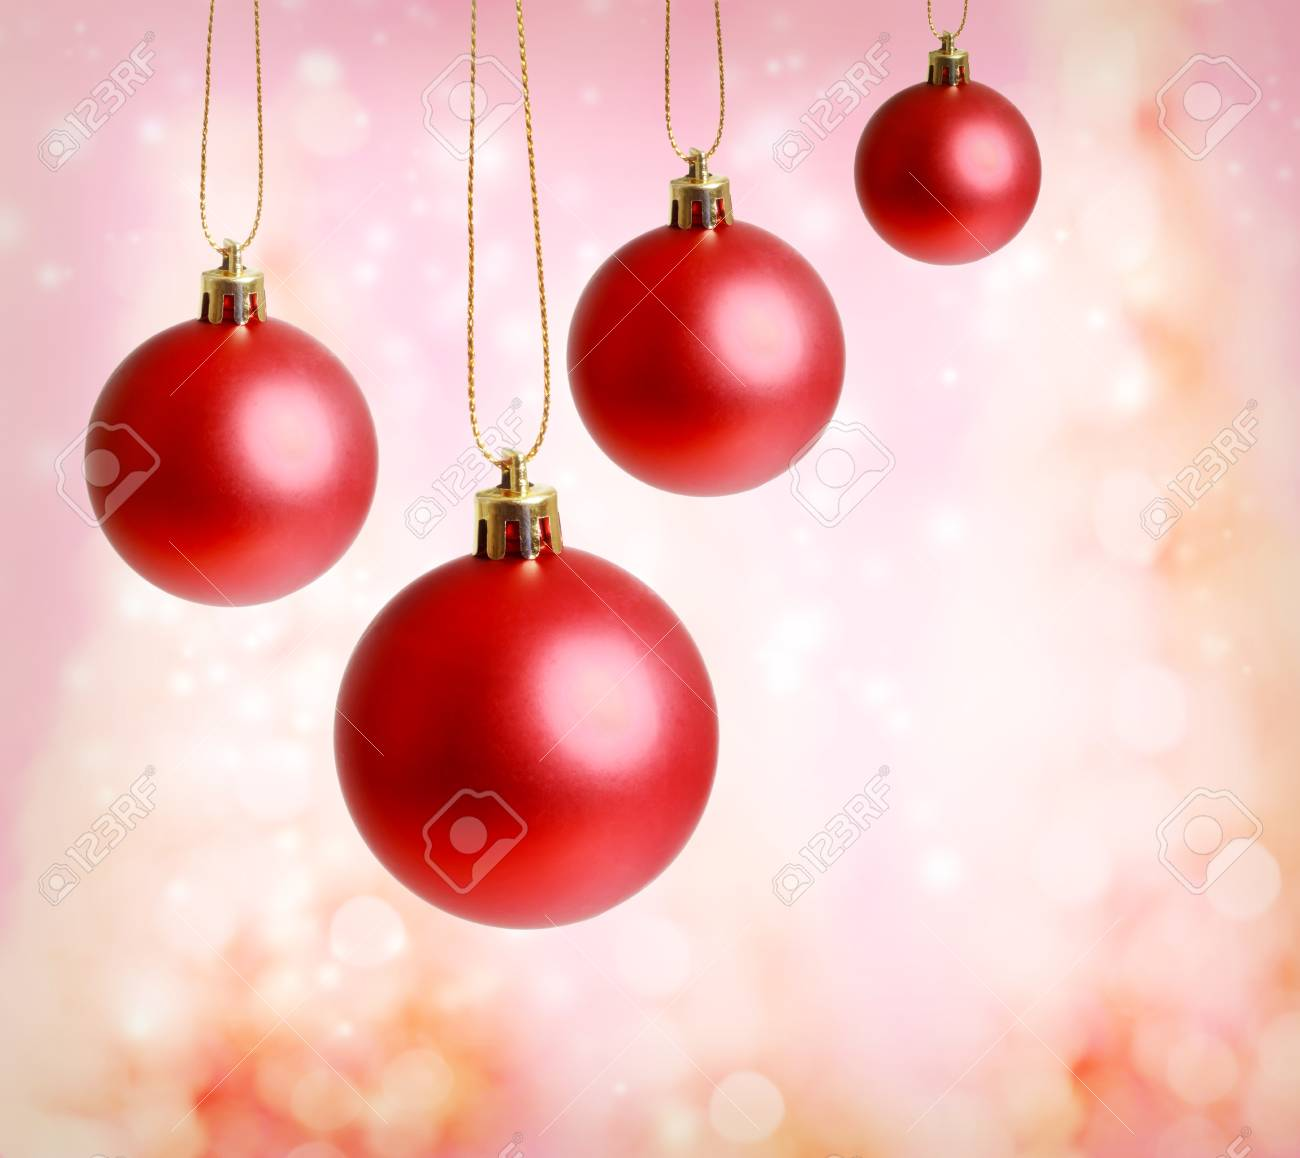 Red christmas ornaments with pink lights background Stock Photo - 16630424